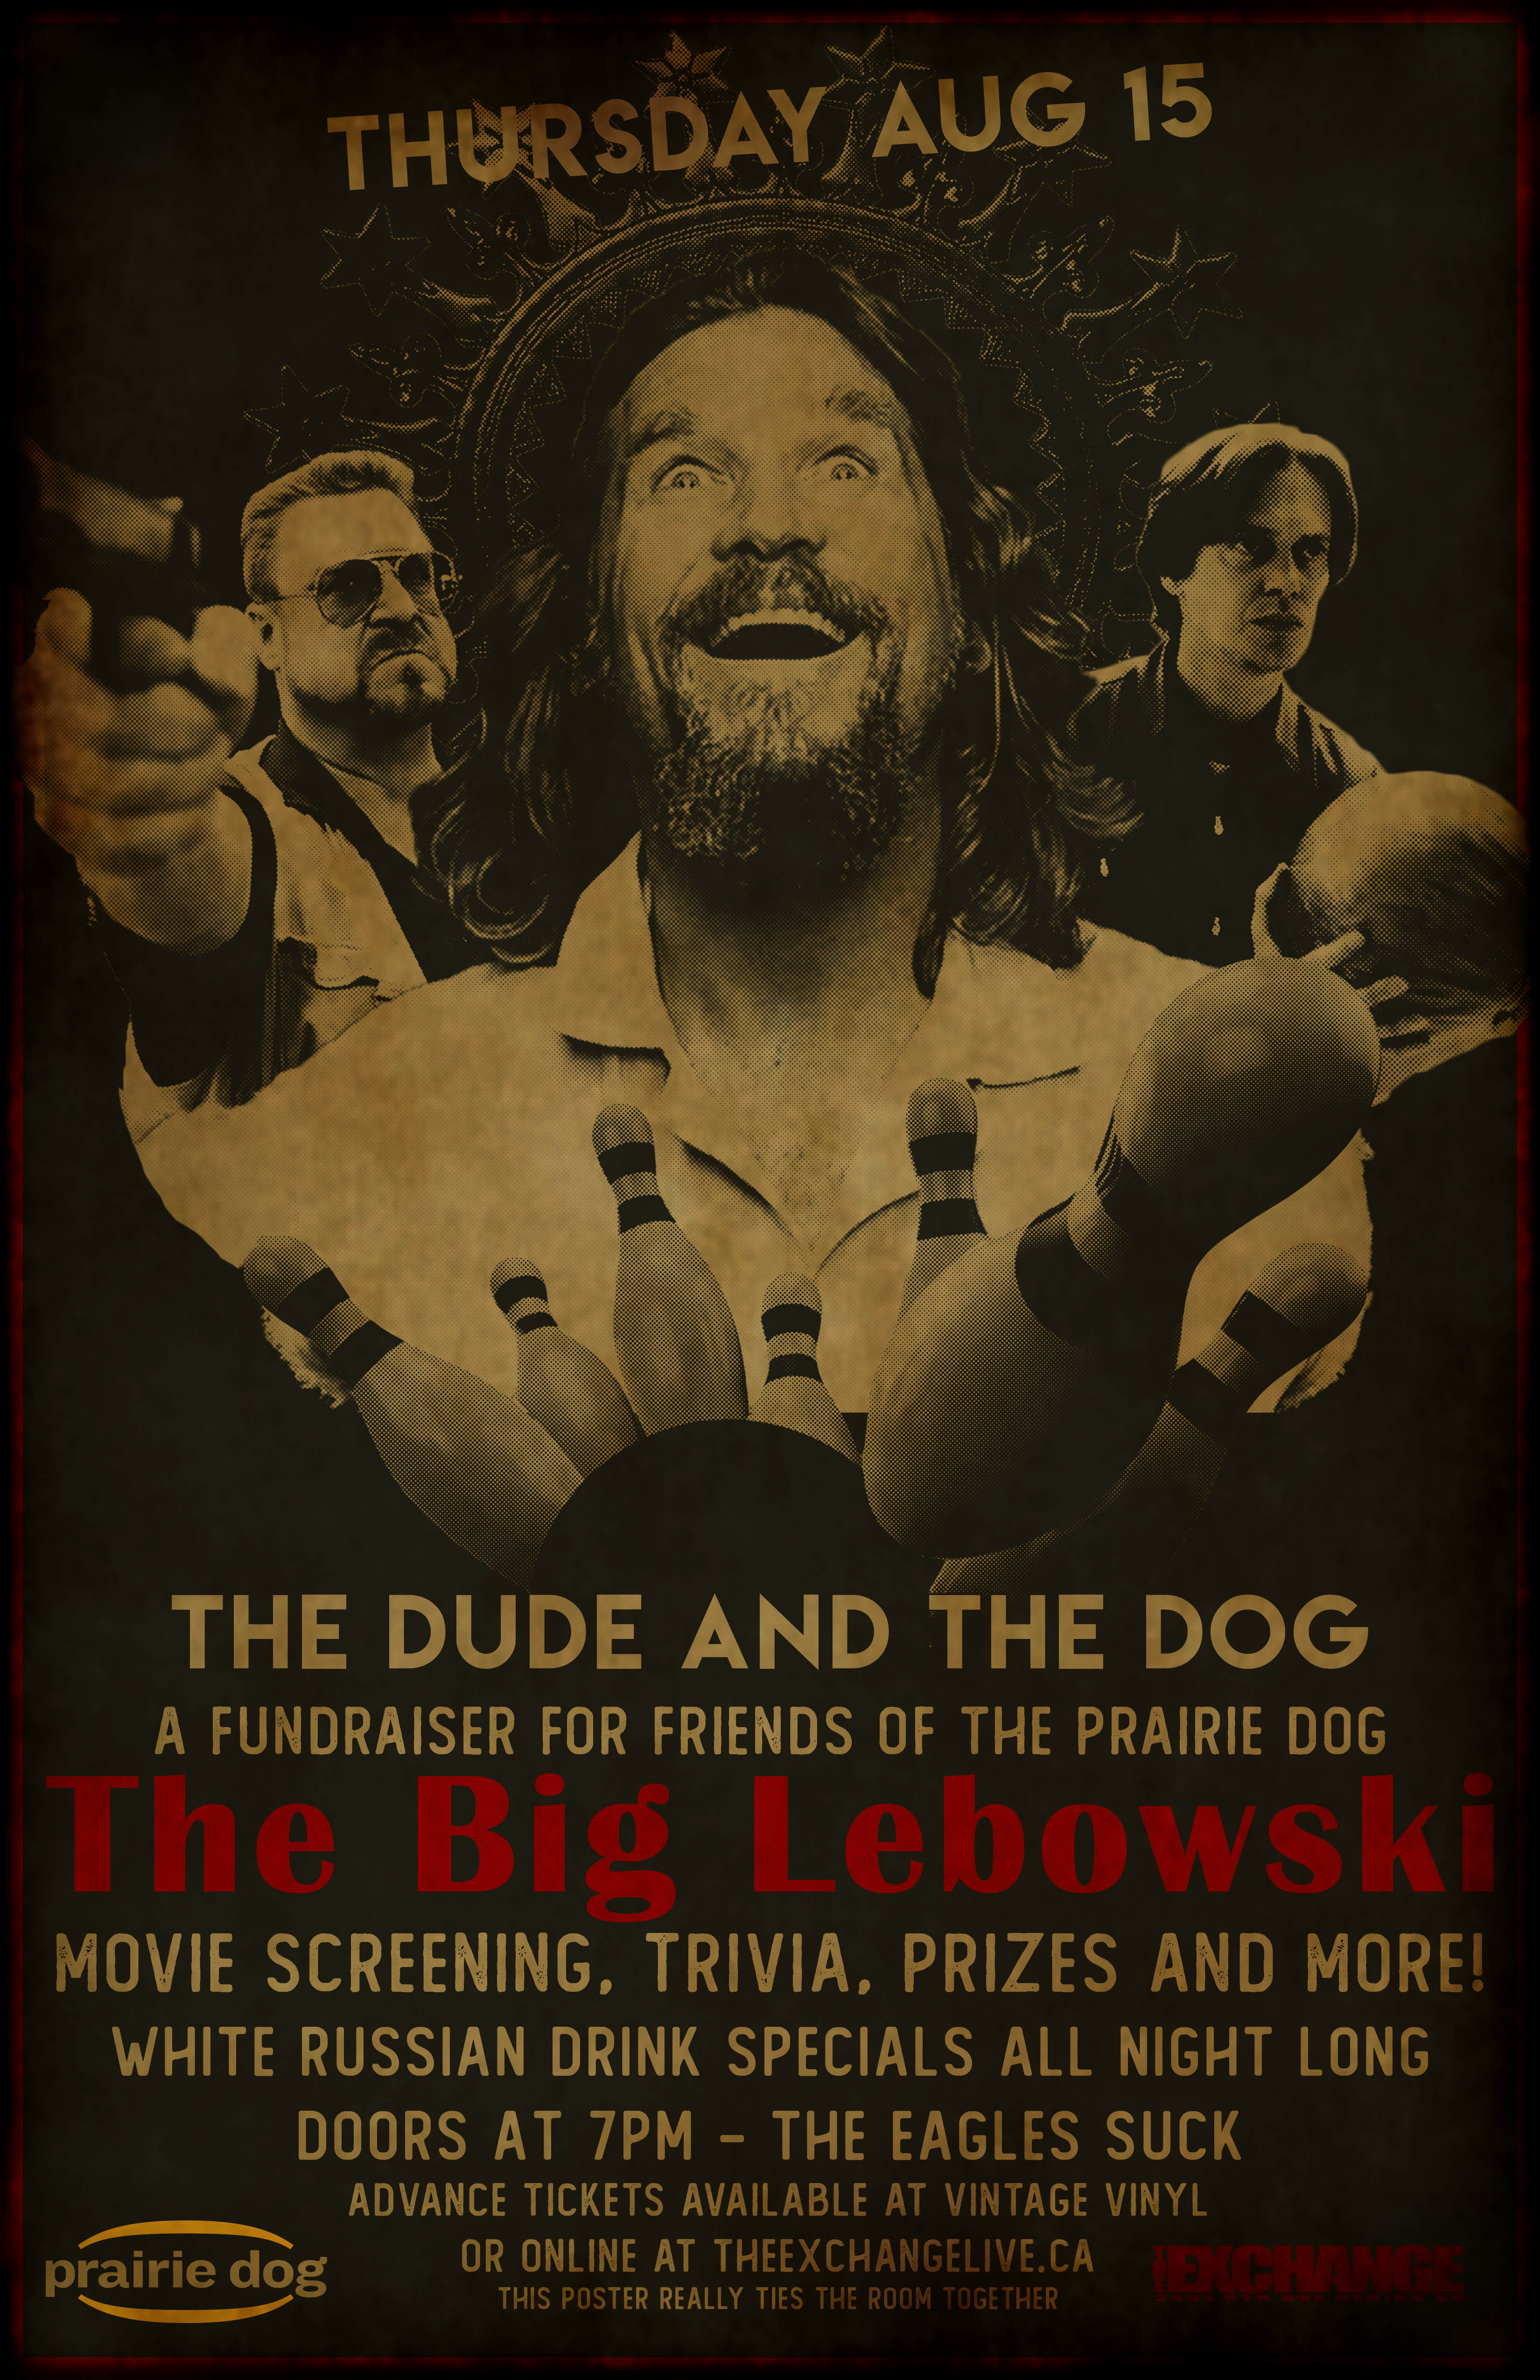 The Dude and The Dog - Big Lebowski screening - A Prairie Dog Fundraiser - Image 1